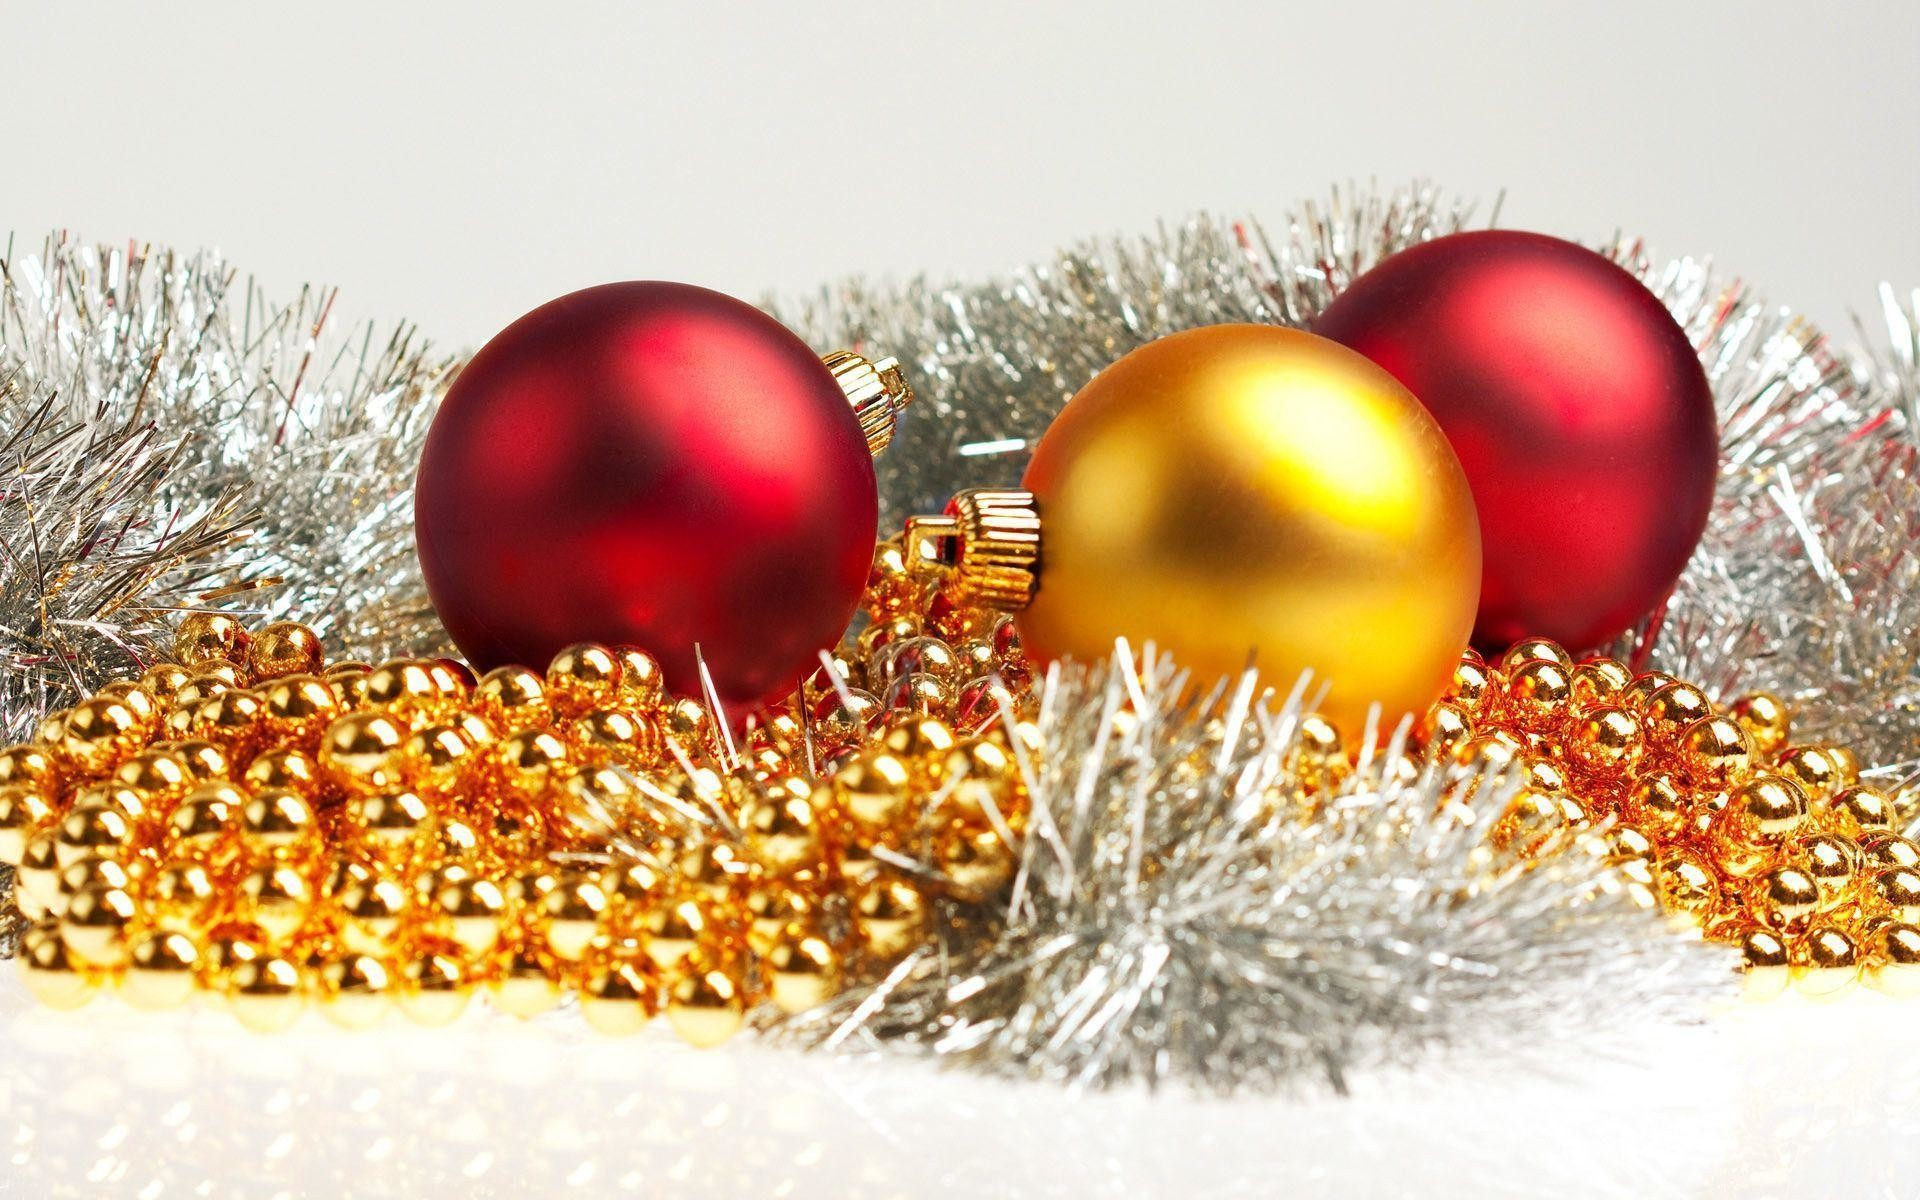 Christmas live wallpaper for desktop 51 images - Free christmas images for desktop wallpaper ...